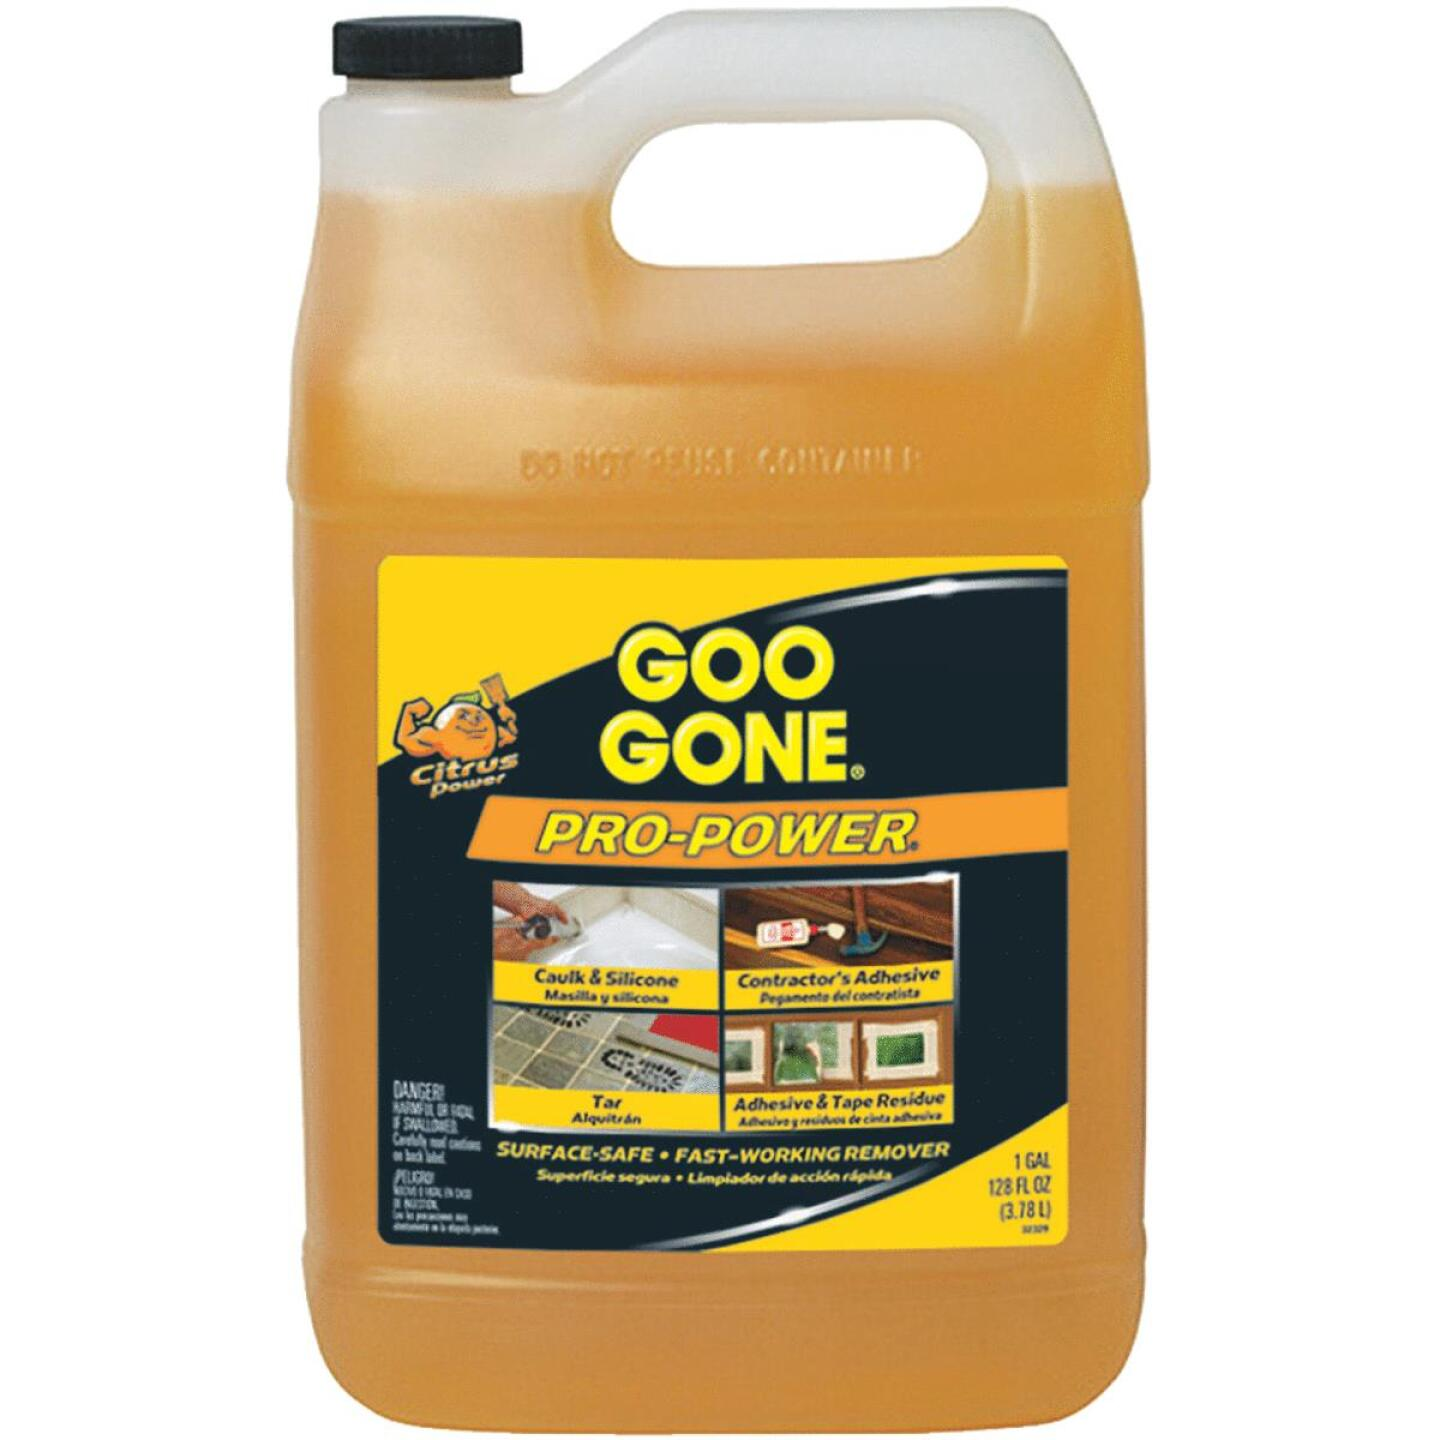 Goo Gone 1 Gal. Pro-Power Adhesive Remover Image 216